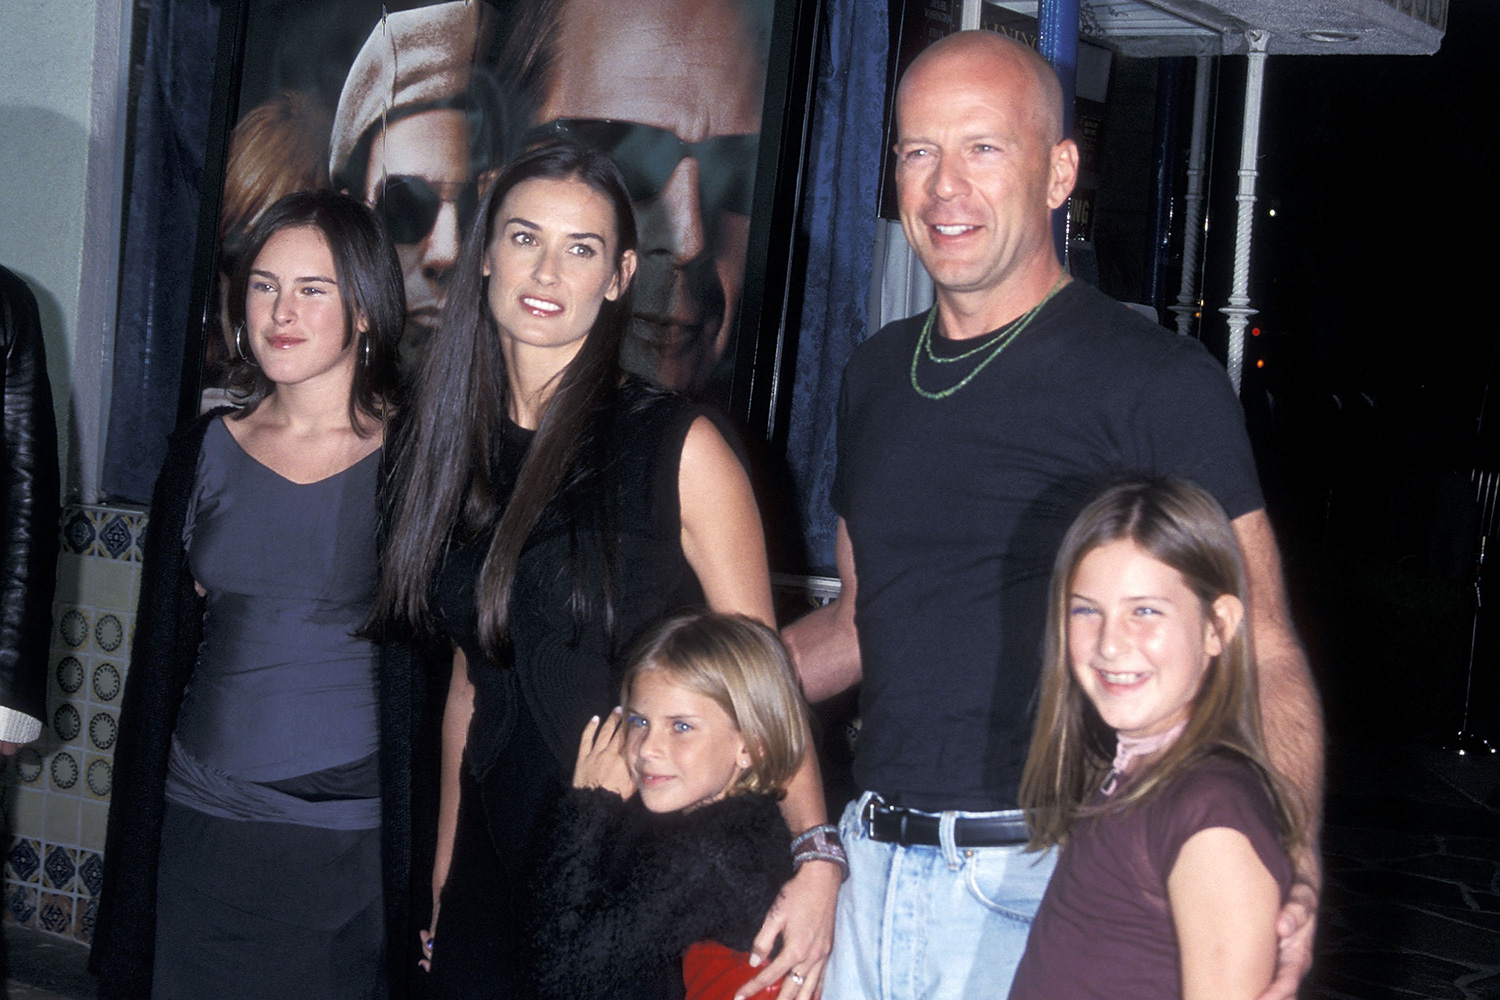 Demi Moore, actor Bruce Willis and daughters Rumer Willis, Tallulah Willis and Scout Willis